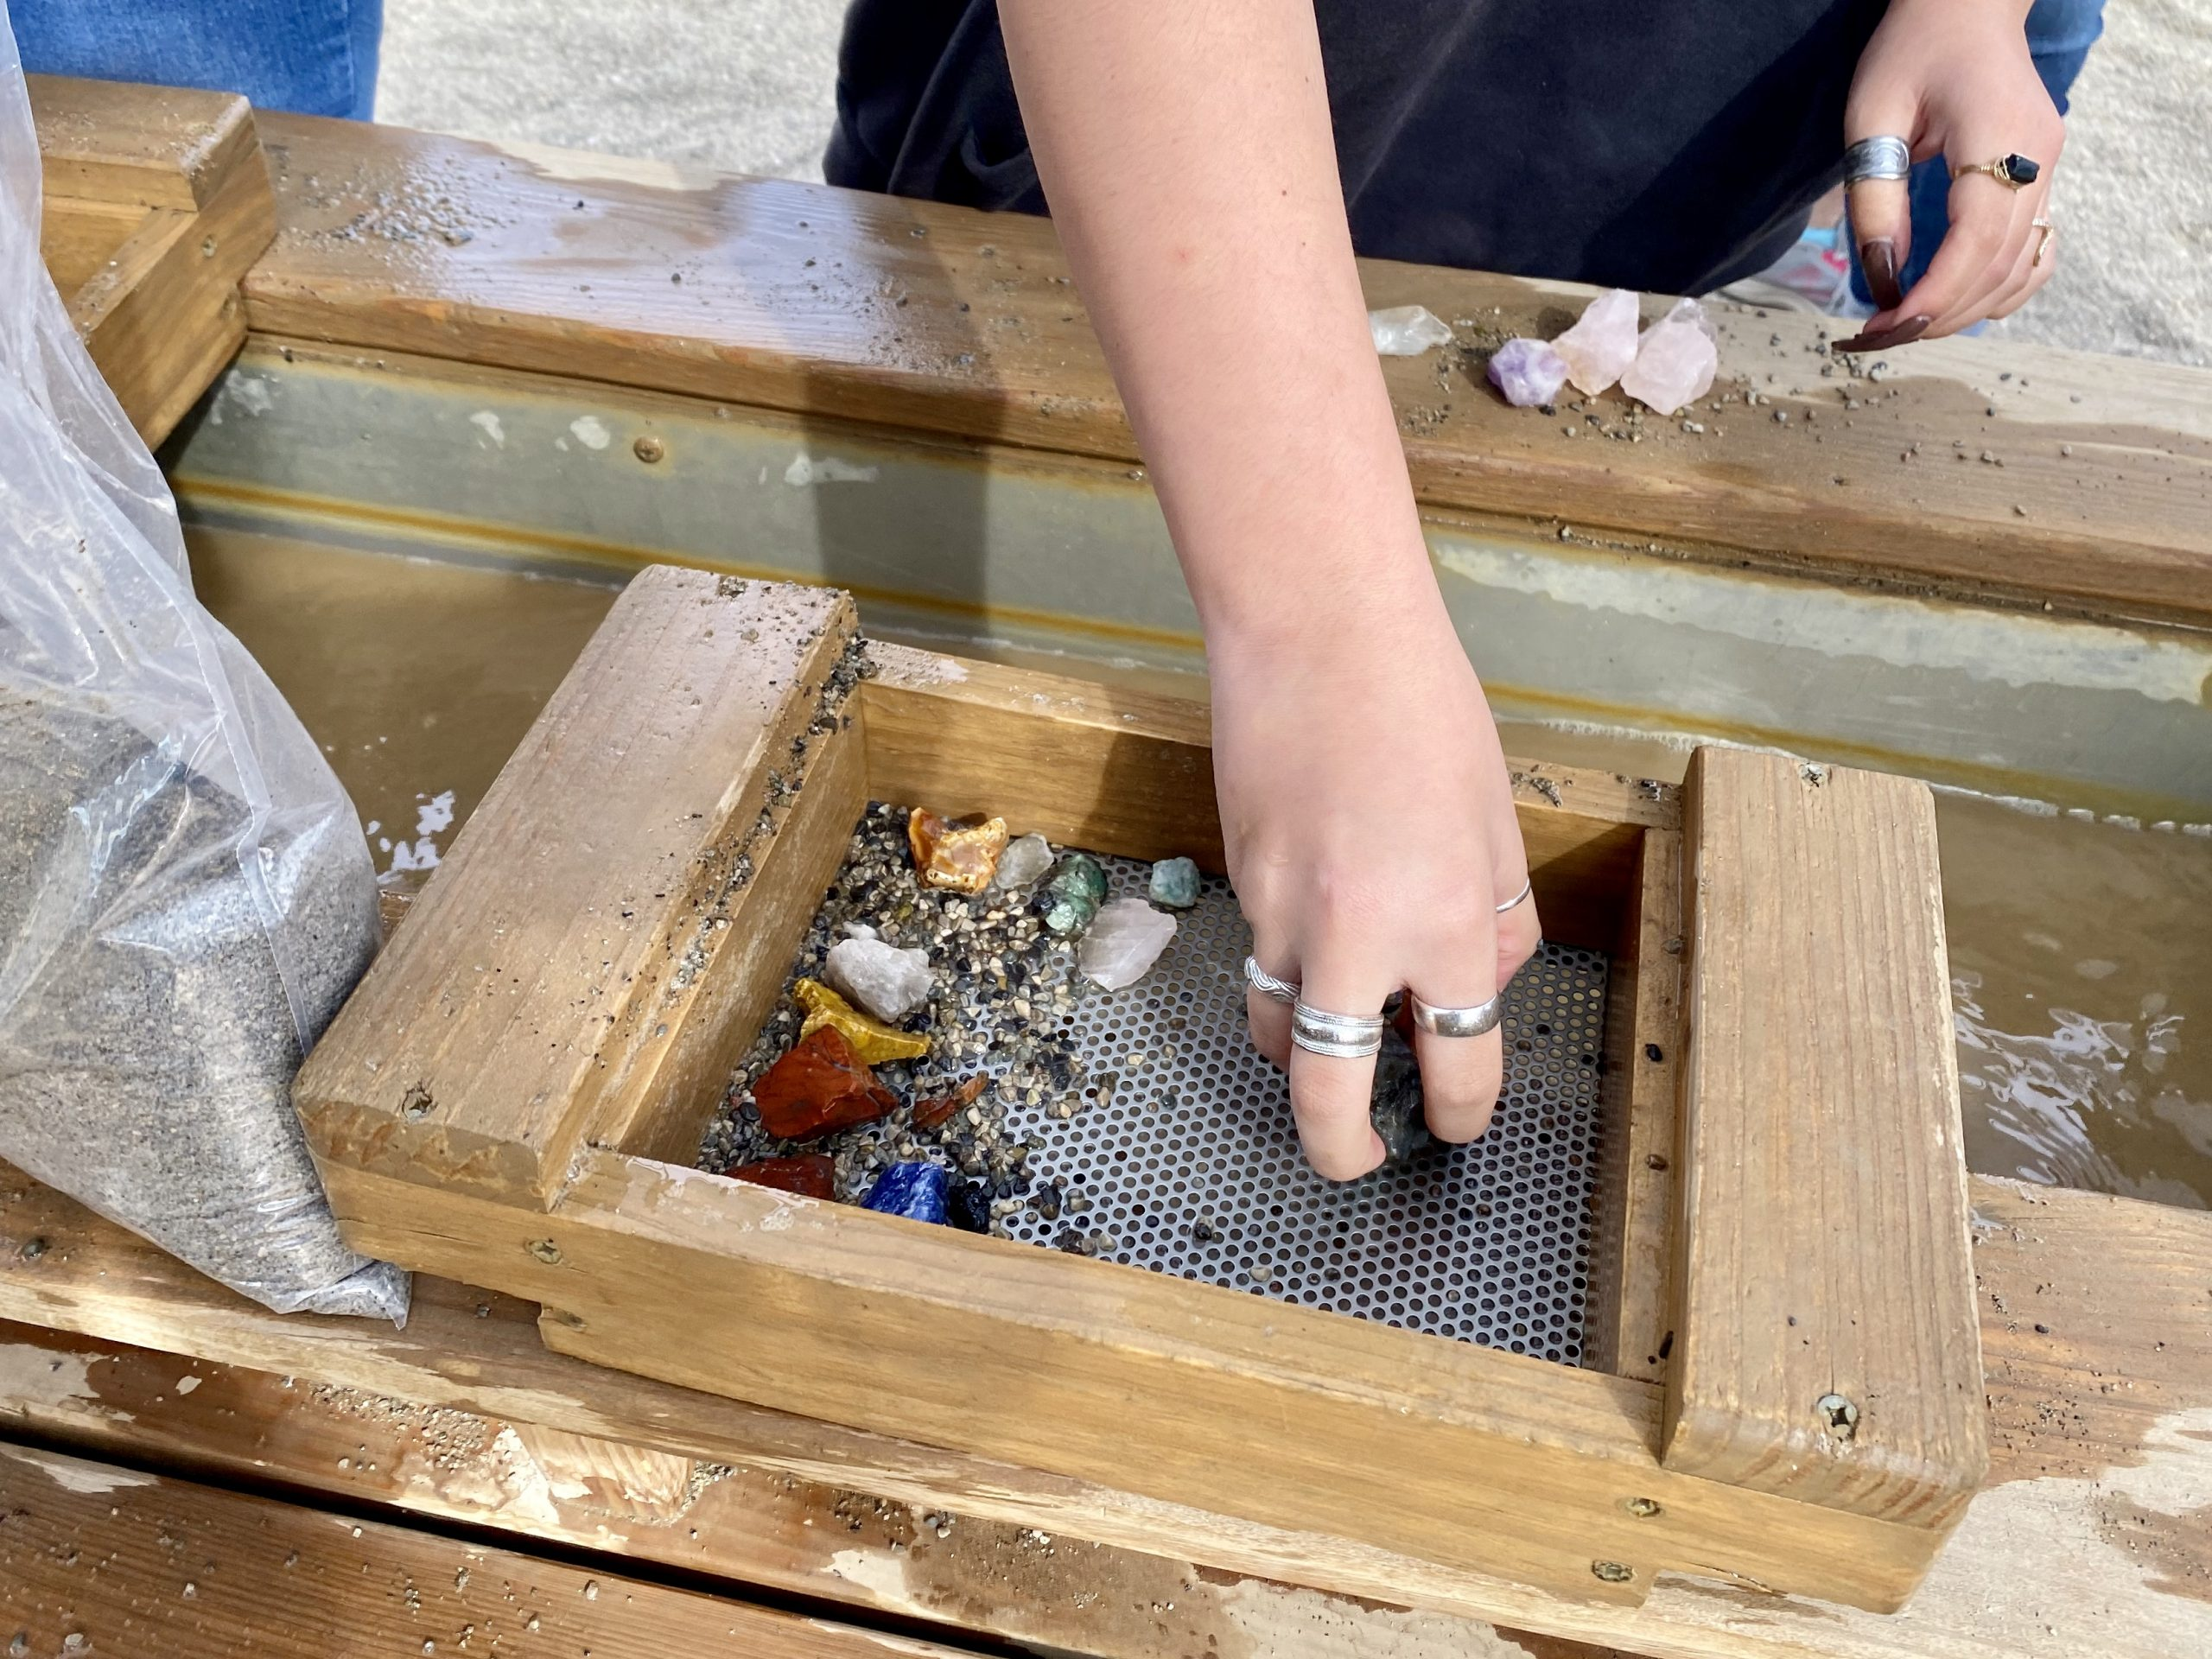 Girl pans for gold and jewels in the water sluice at Goldfield Ghost Town and Mines in Mesa, Arizona